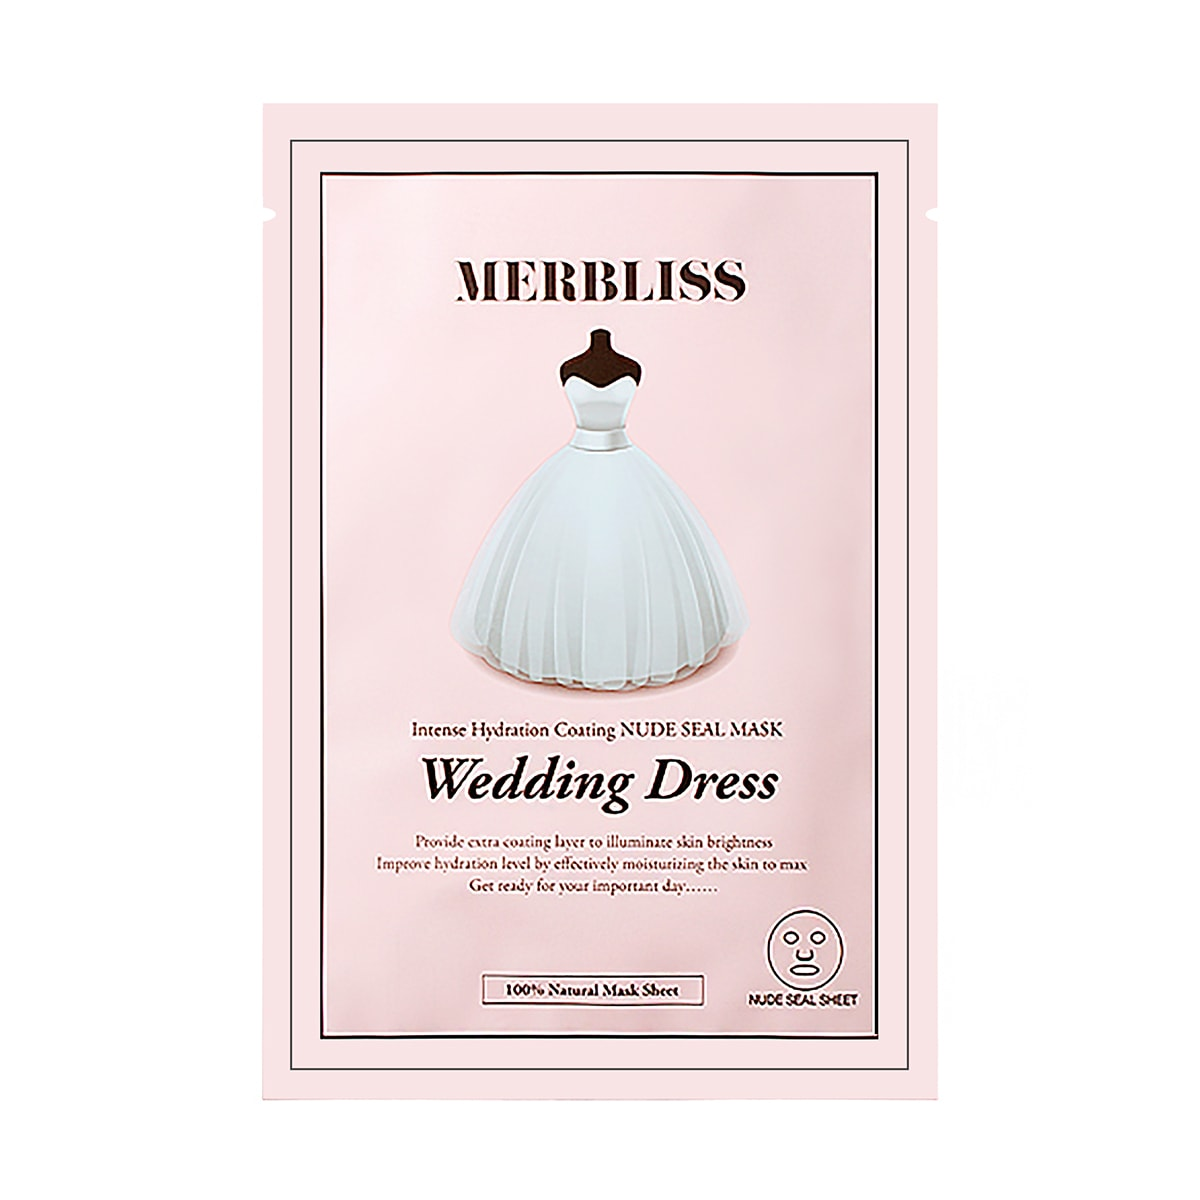 MERBLISS Wedding Dress Intense Hydration Coating Nude Seal Mask 1sheet